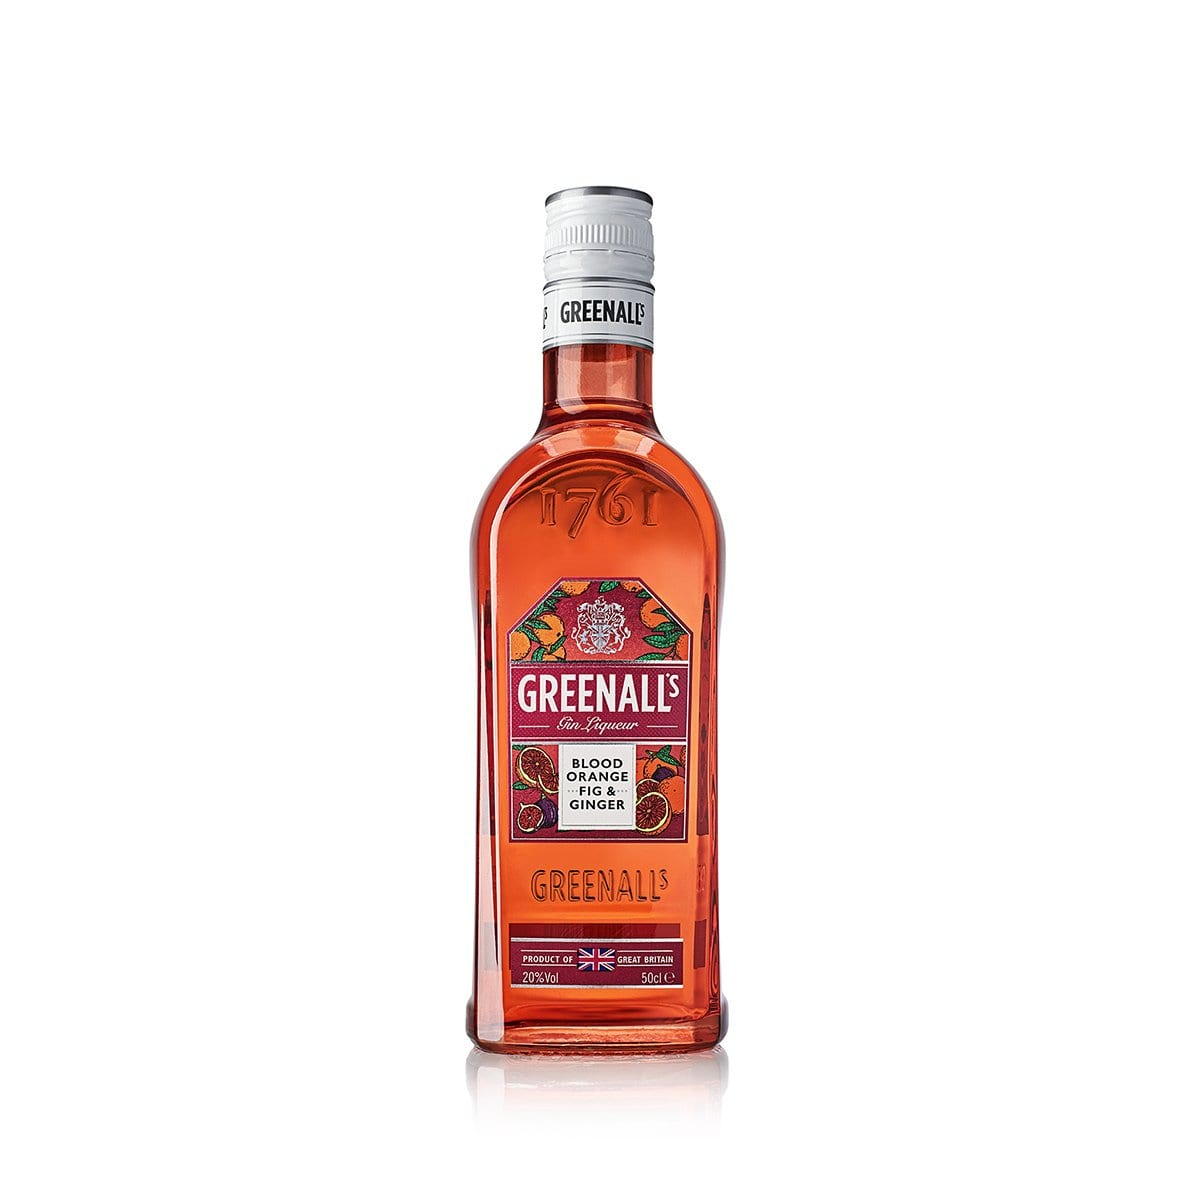 Greenall's Blood Orange, Fig & Ginger Gin Liqueur